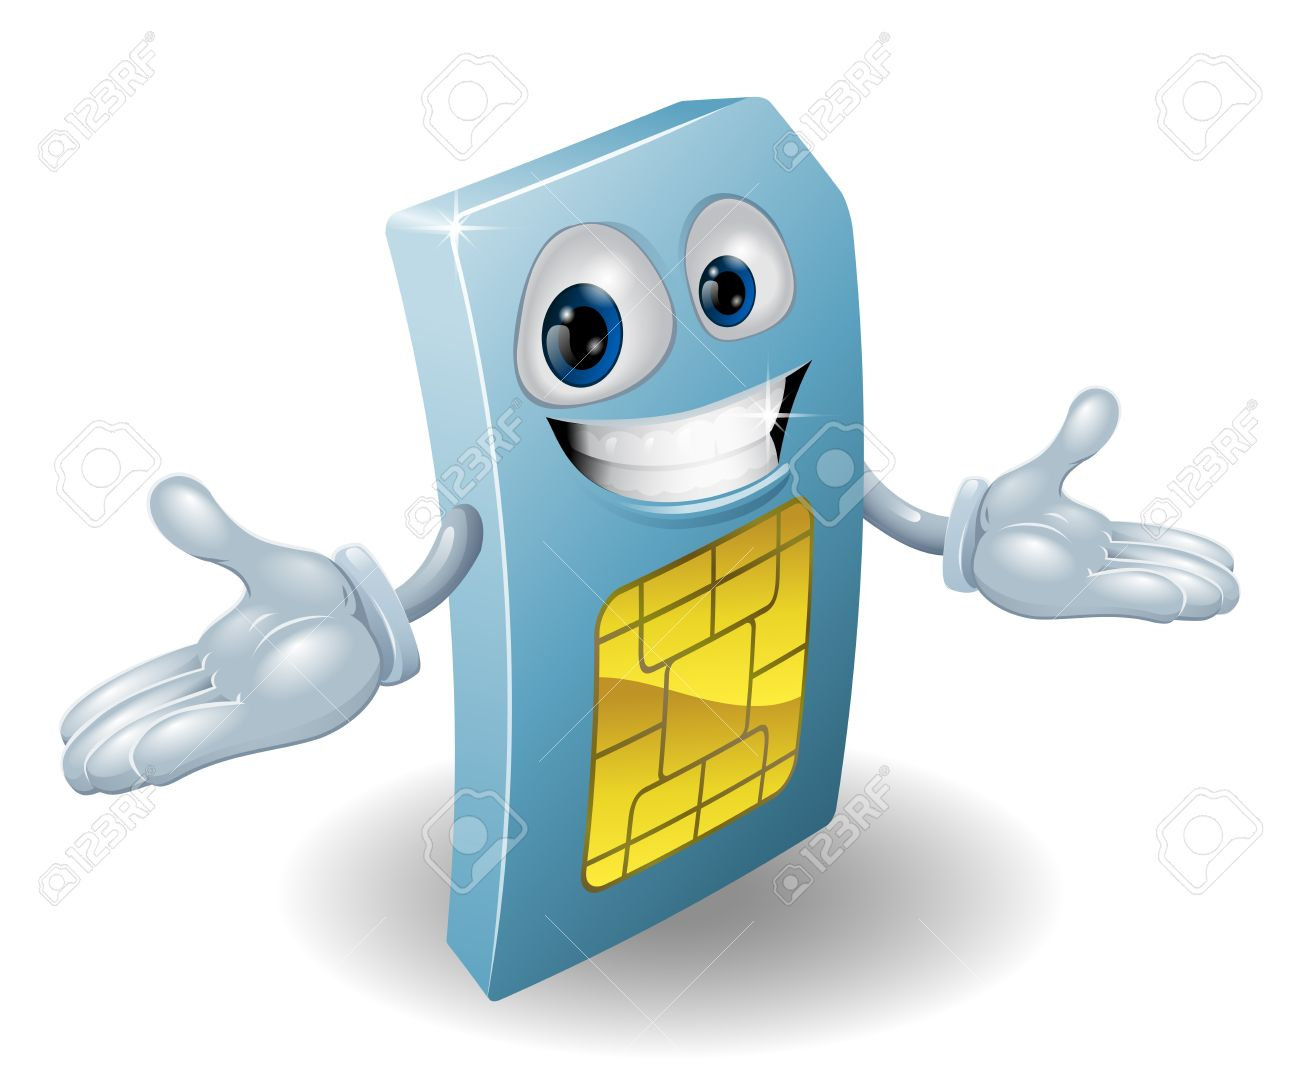 A Mobile Phone Subscriber Identity Module Card Mascot Royalty Free.